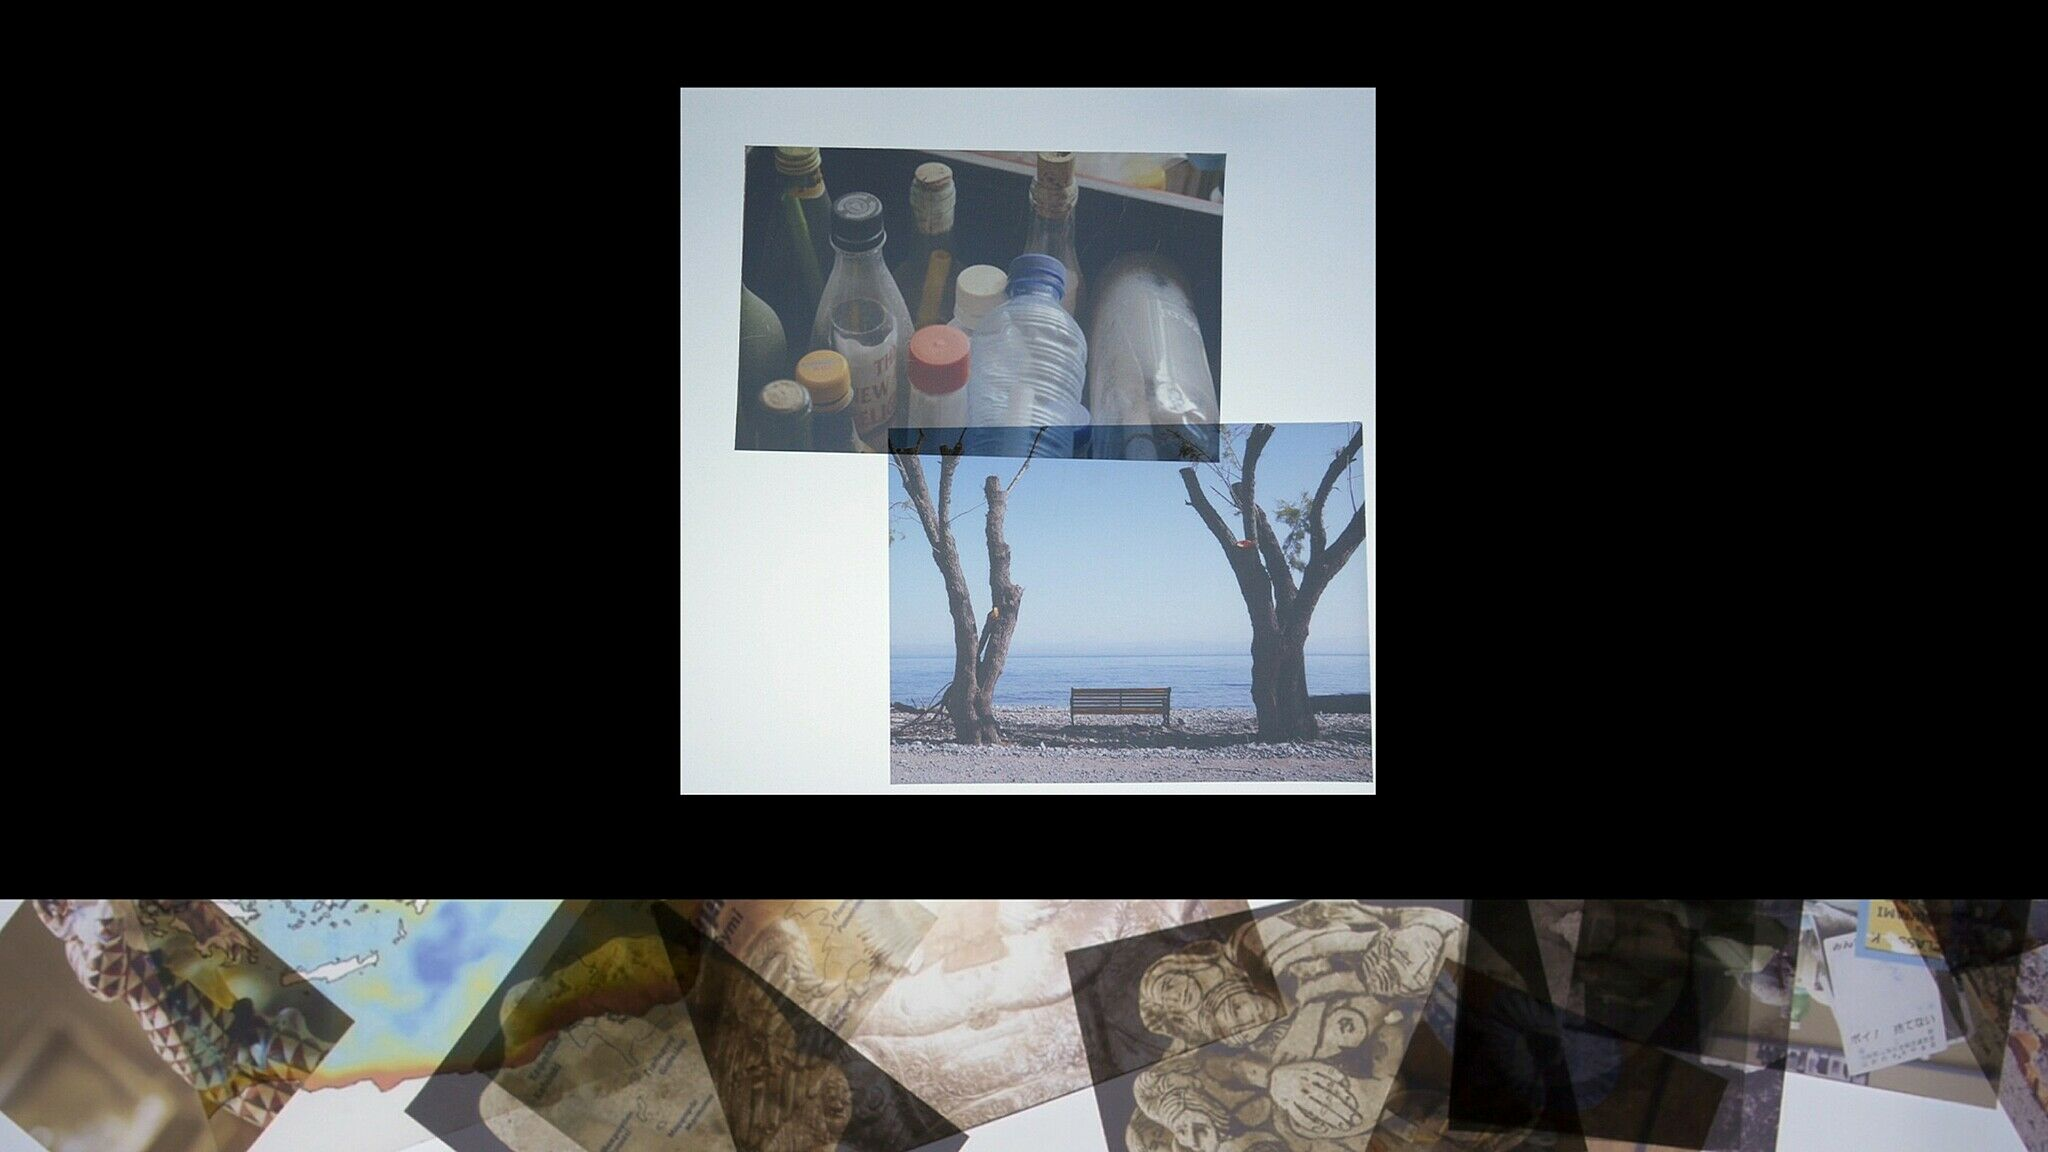 A video still of collaged images.